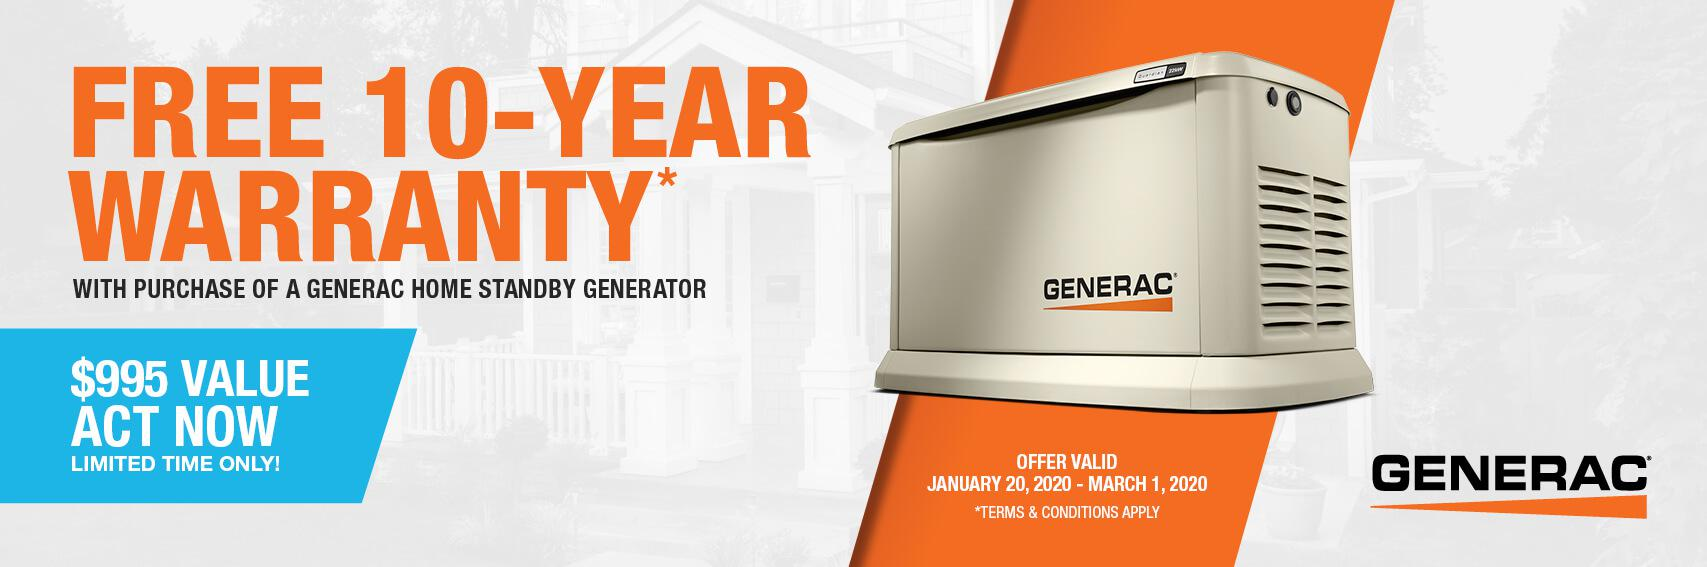 Homestandby Generator Deal | Warranty Offer | Generac Dealer | Darien, CT